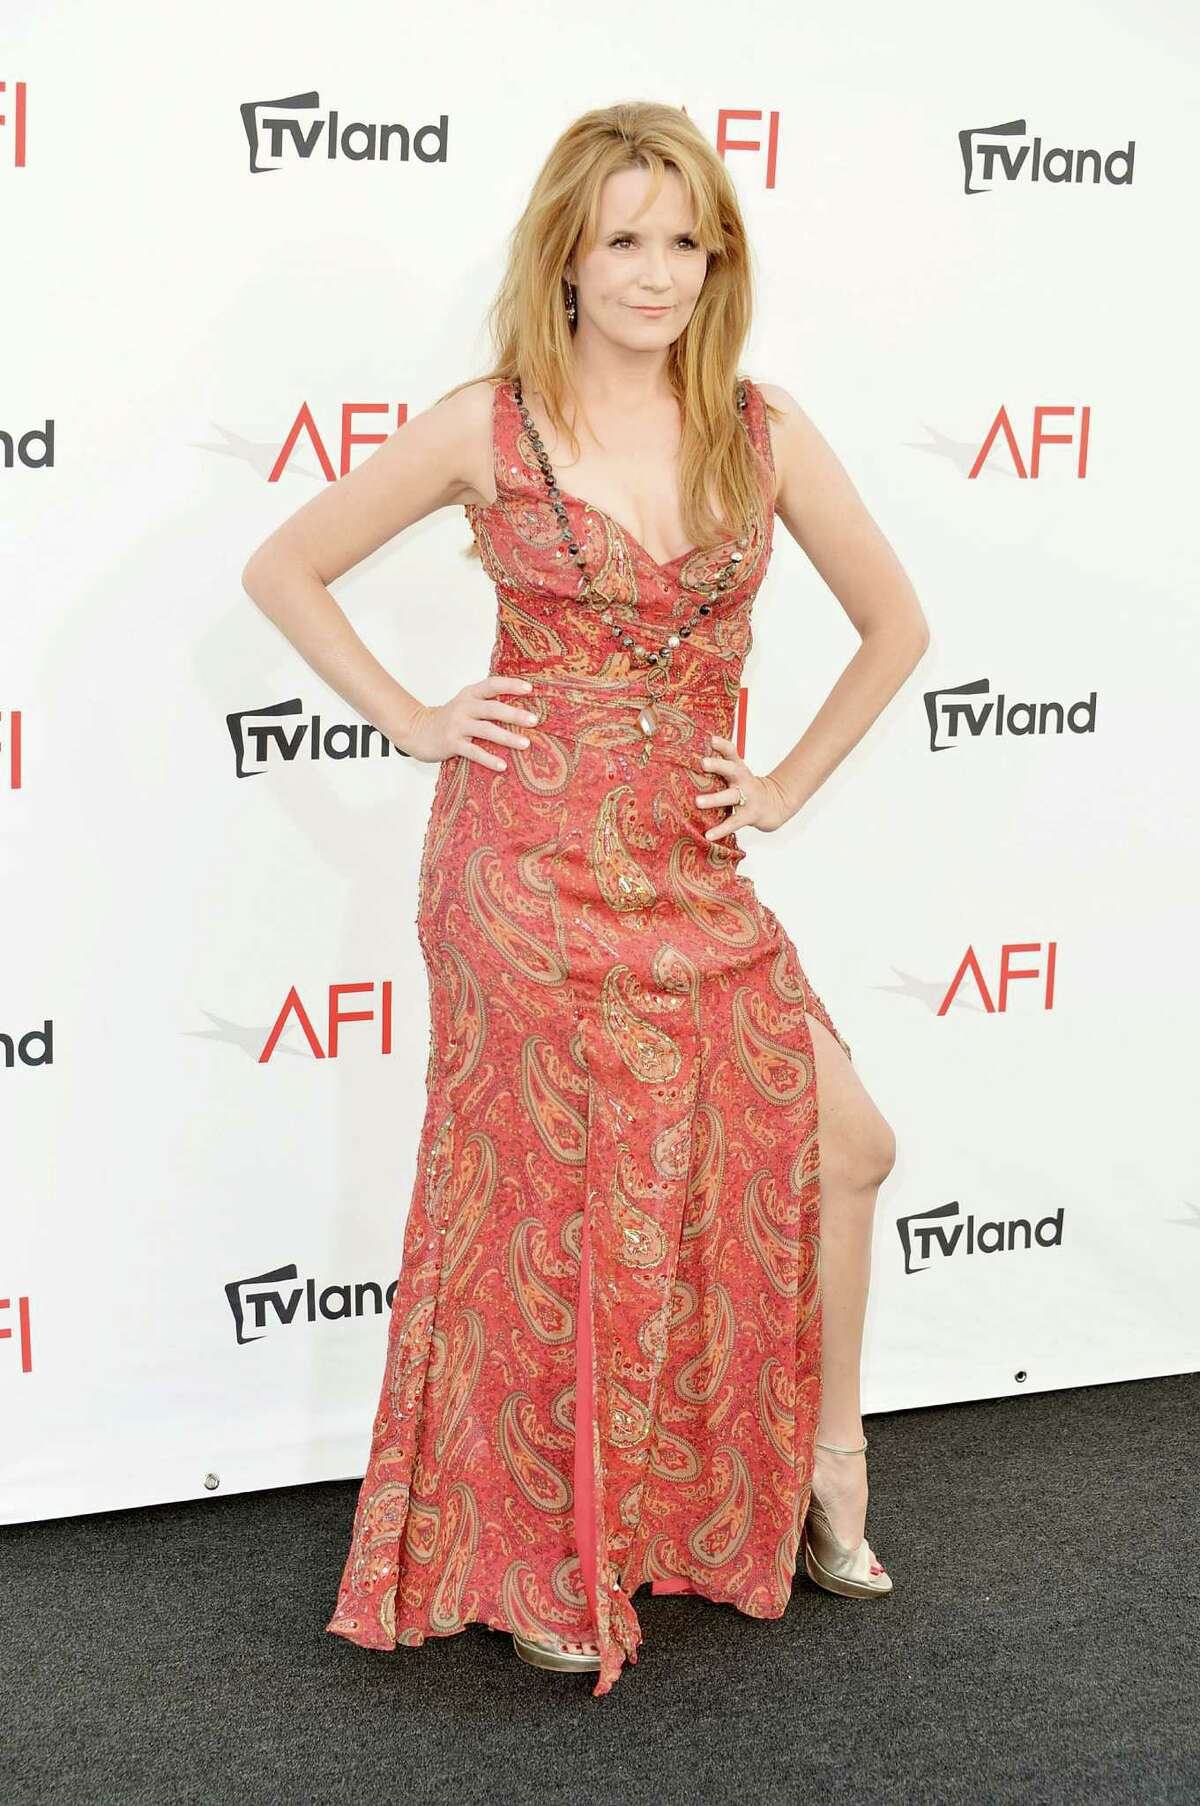 Actress Lea Thompson arrives at the 40th AFI Life Achievement Award honoring Shirley MacLaine held at Sony Pictures Studios in Culver City, Calif., on June 7, 2012. The AFI Life Achievement Award tribute to Shirley MacLaine will premiere on TV Land on Saturday, June 24 at 9 p.m. ET/PST.